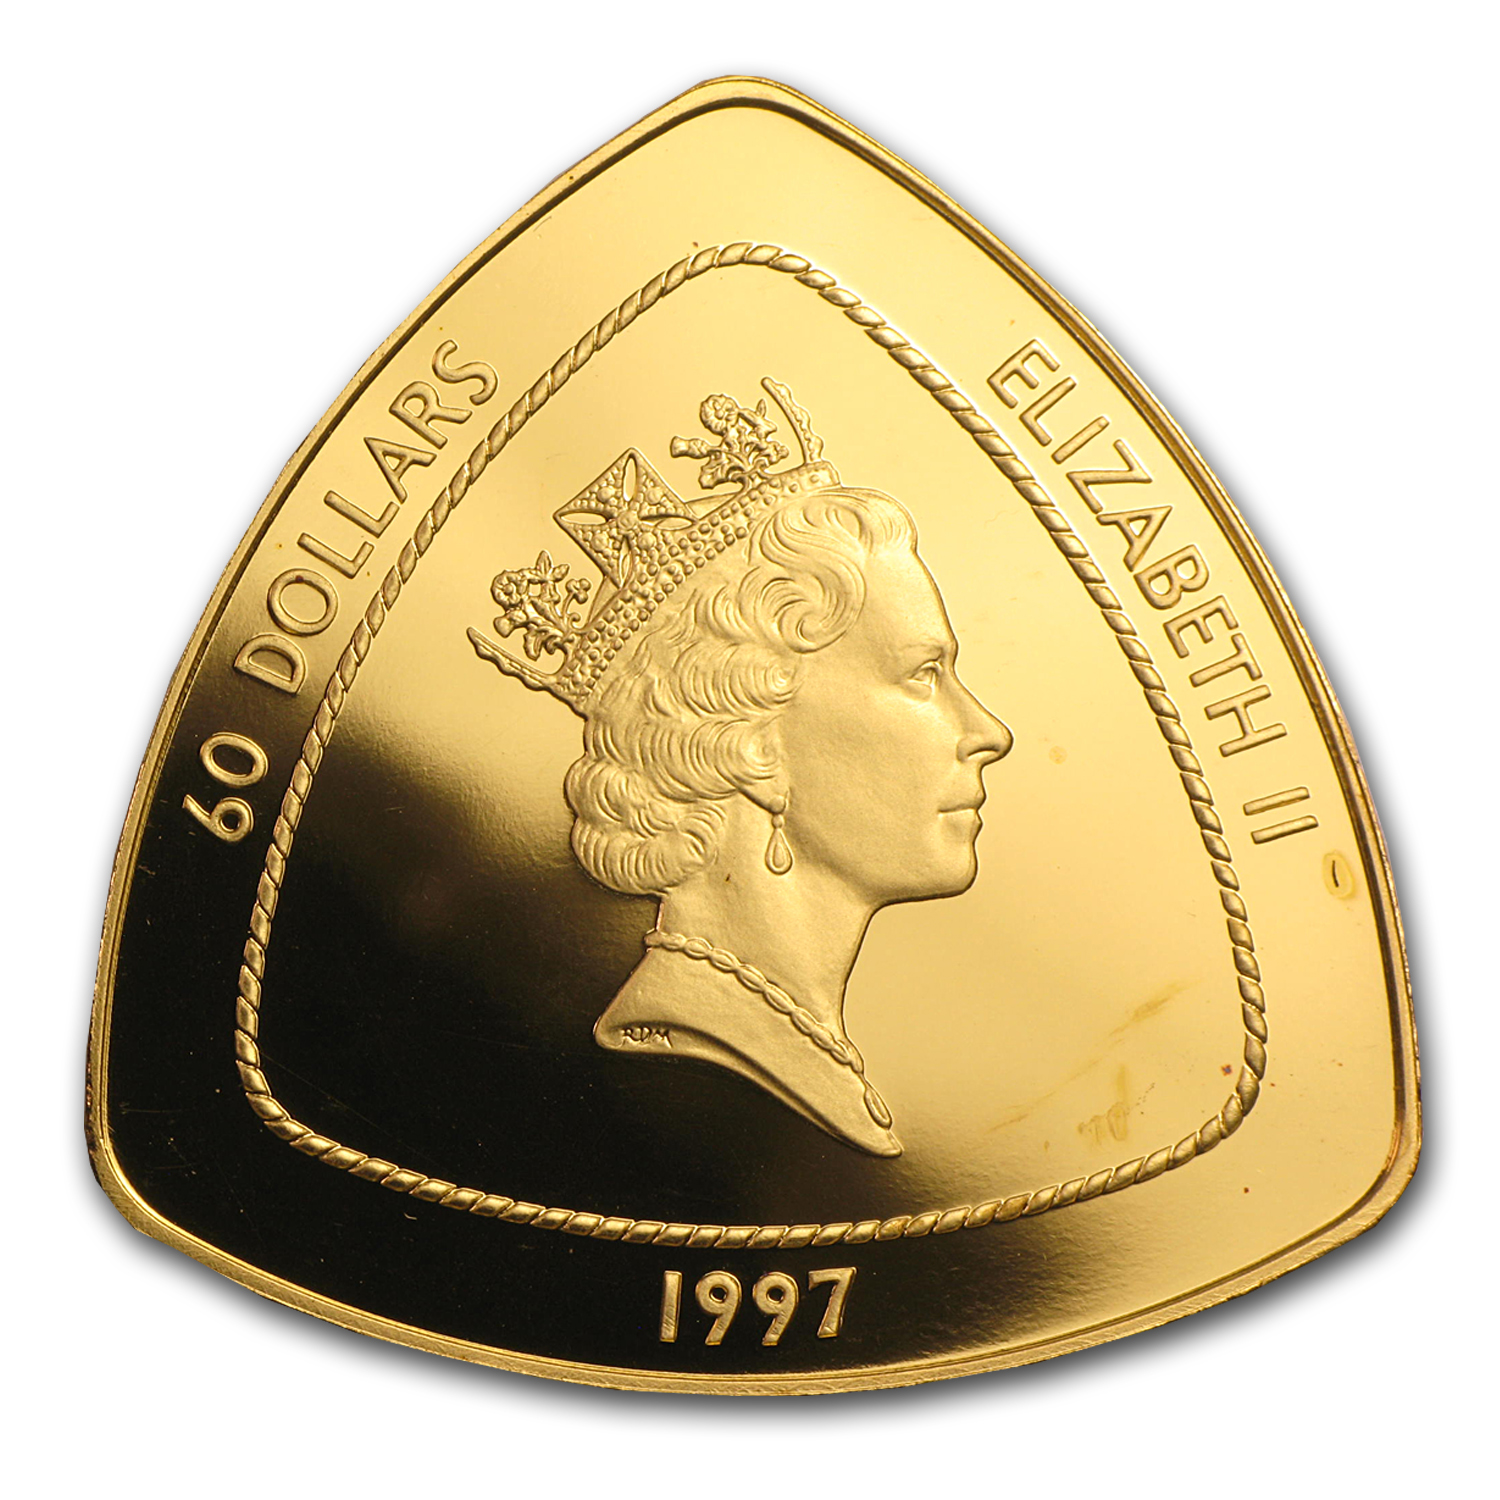 Bermuda 1997 Triangle $60 1 oz Gold Coin (Proof)